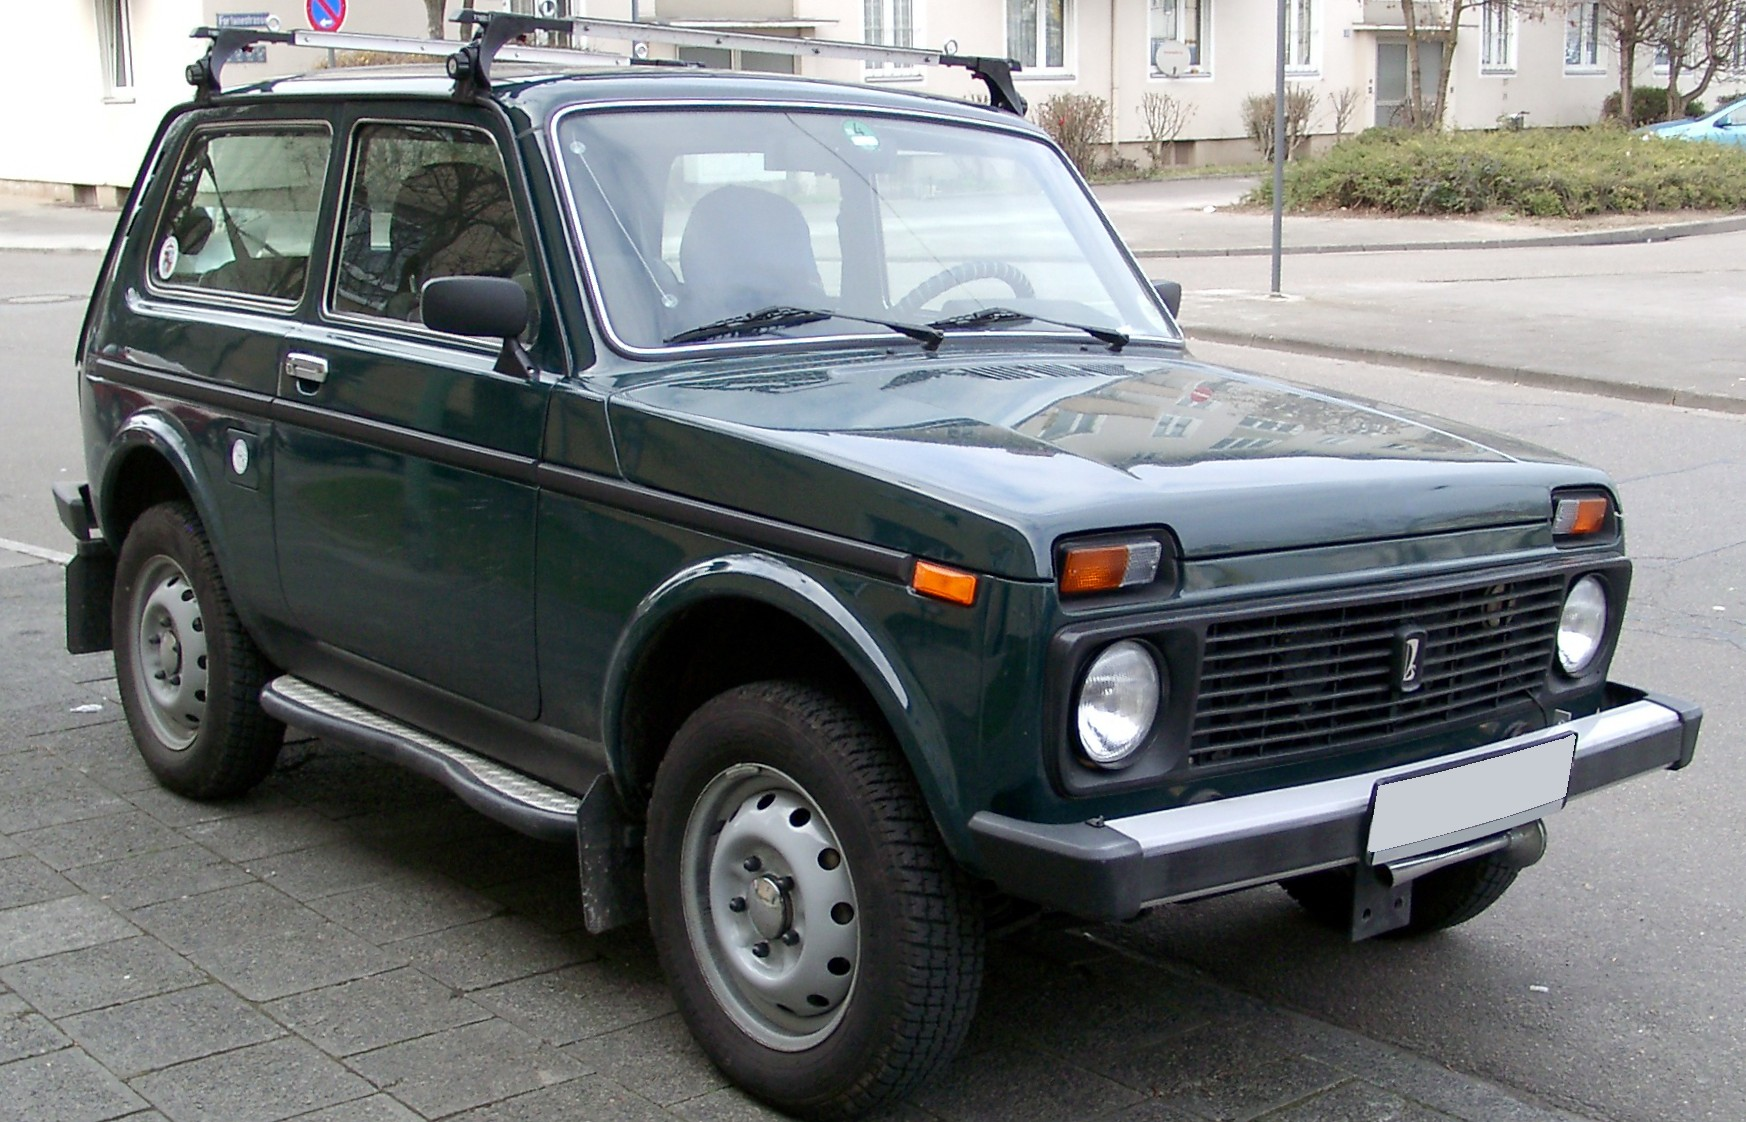 lada niva 17 4x4 photos news reviews specs car listings. Black Bedroom Furniture Sets. Home Design Ideas